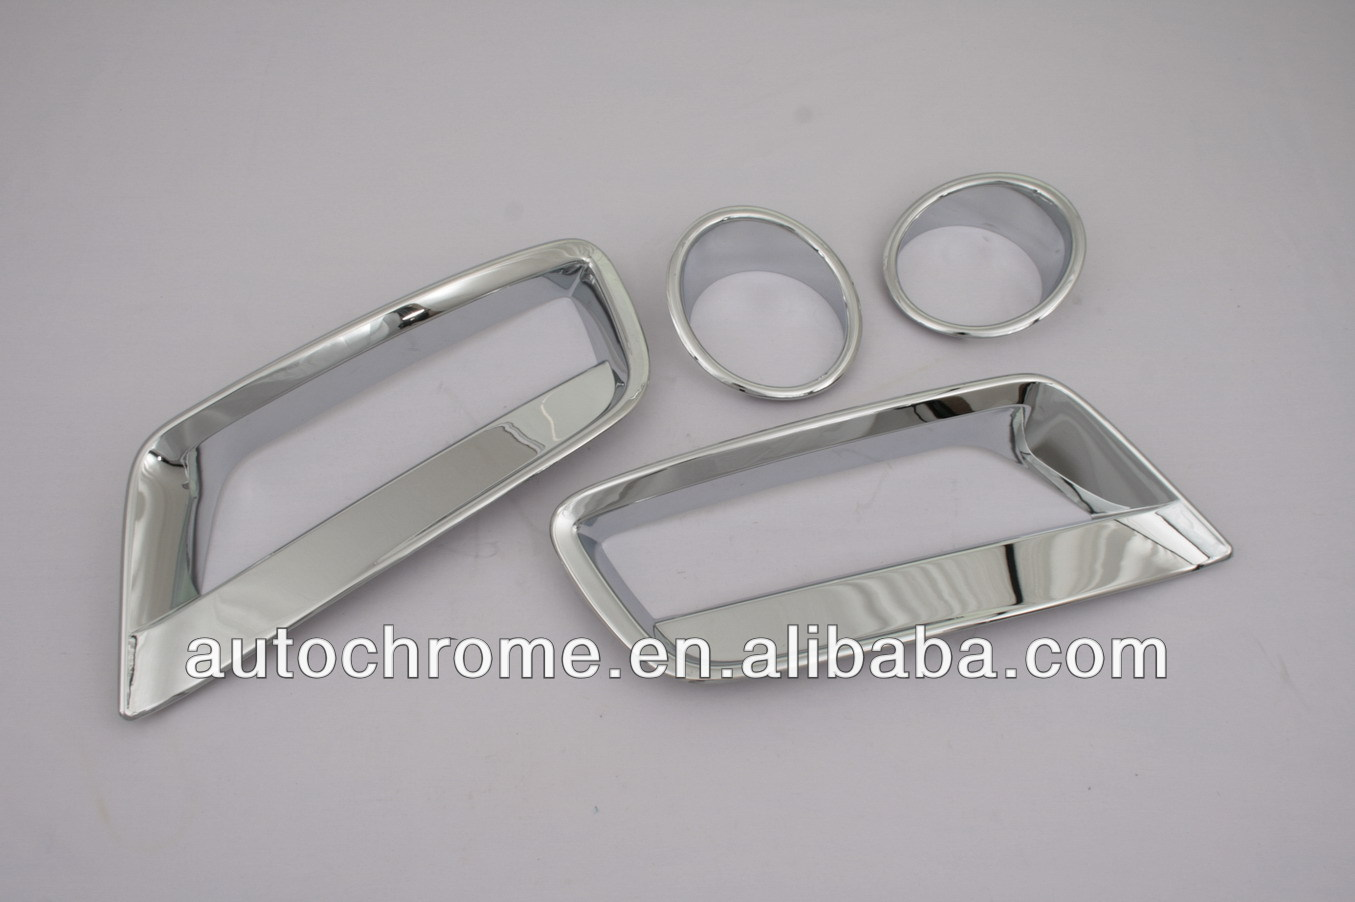 Chrome Front Fog Light Cover Upper And Lower Combo Set for BMW X3 F25